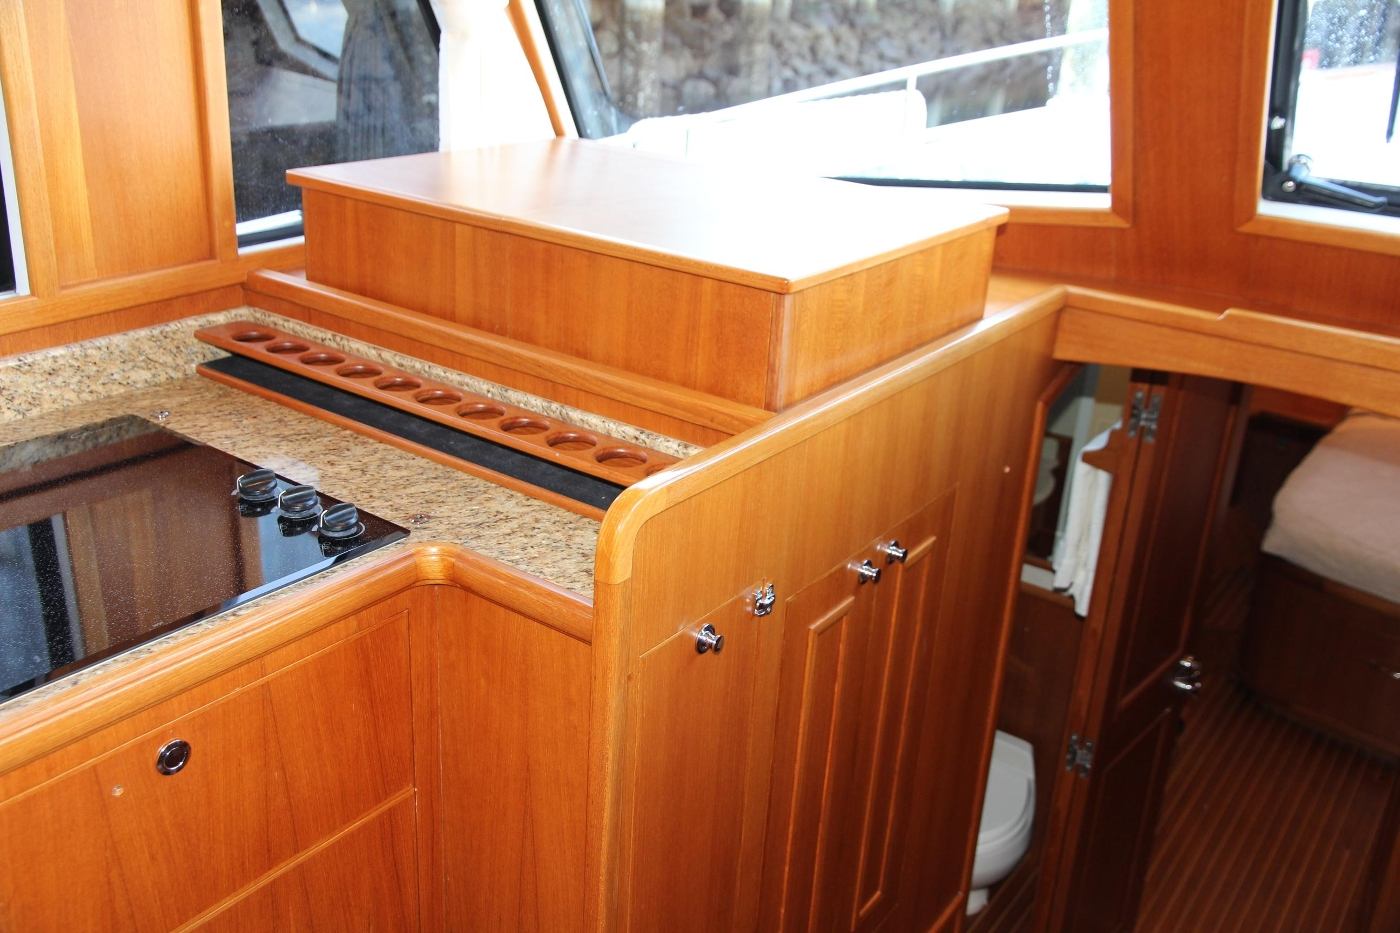 2009 Grand Banks 47 Europa, Spice Rack